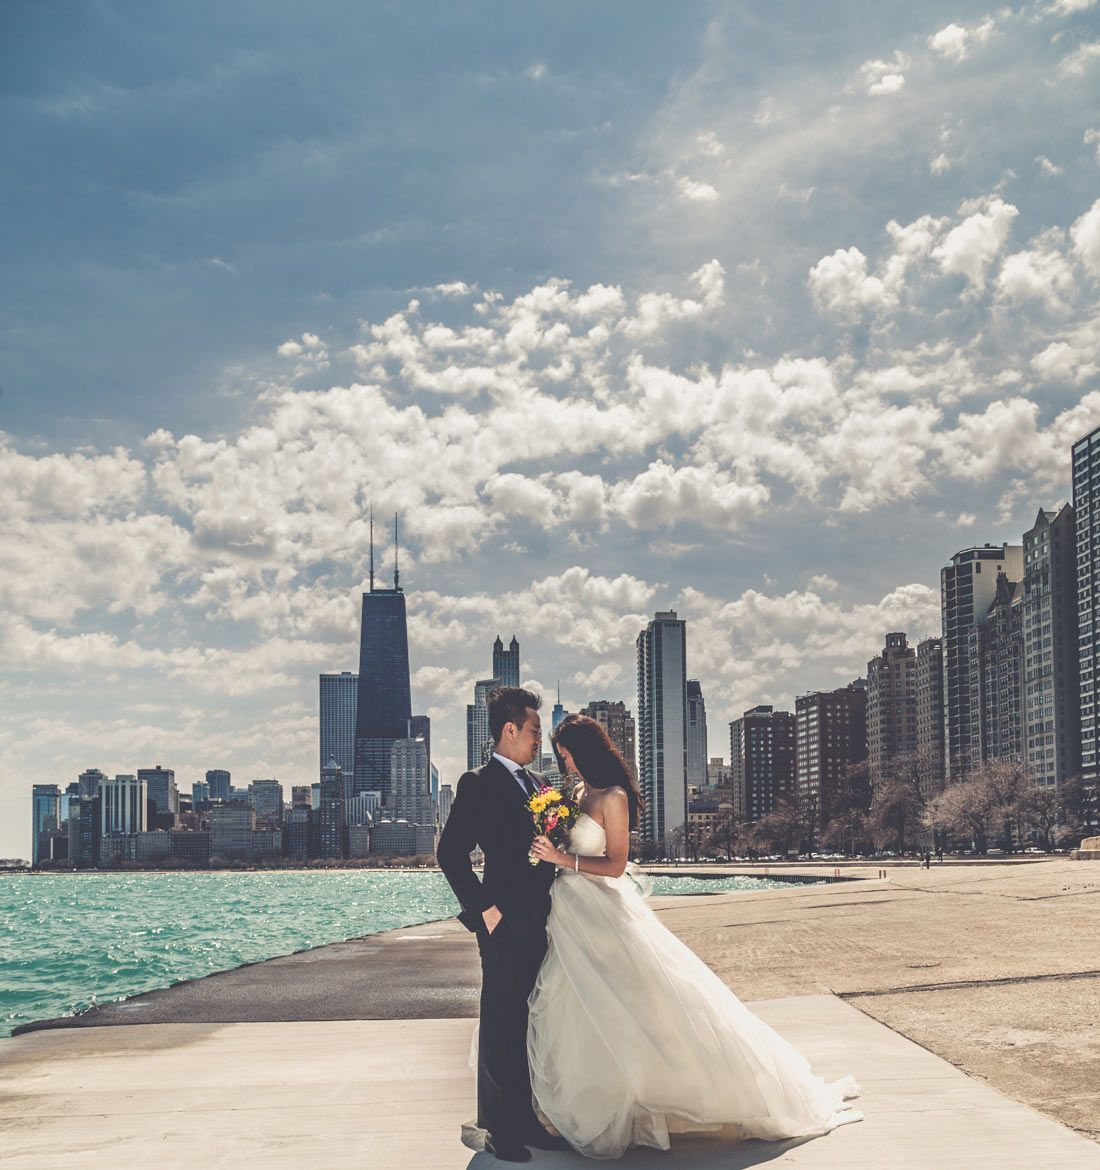 Chicago Courthouse Wedding City Hall High End Wedding Photographer Chicago Indianapoli With Images Chicago Wedding Chicago Wedding Photography Chicago Wedding Venues